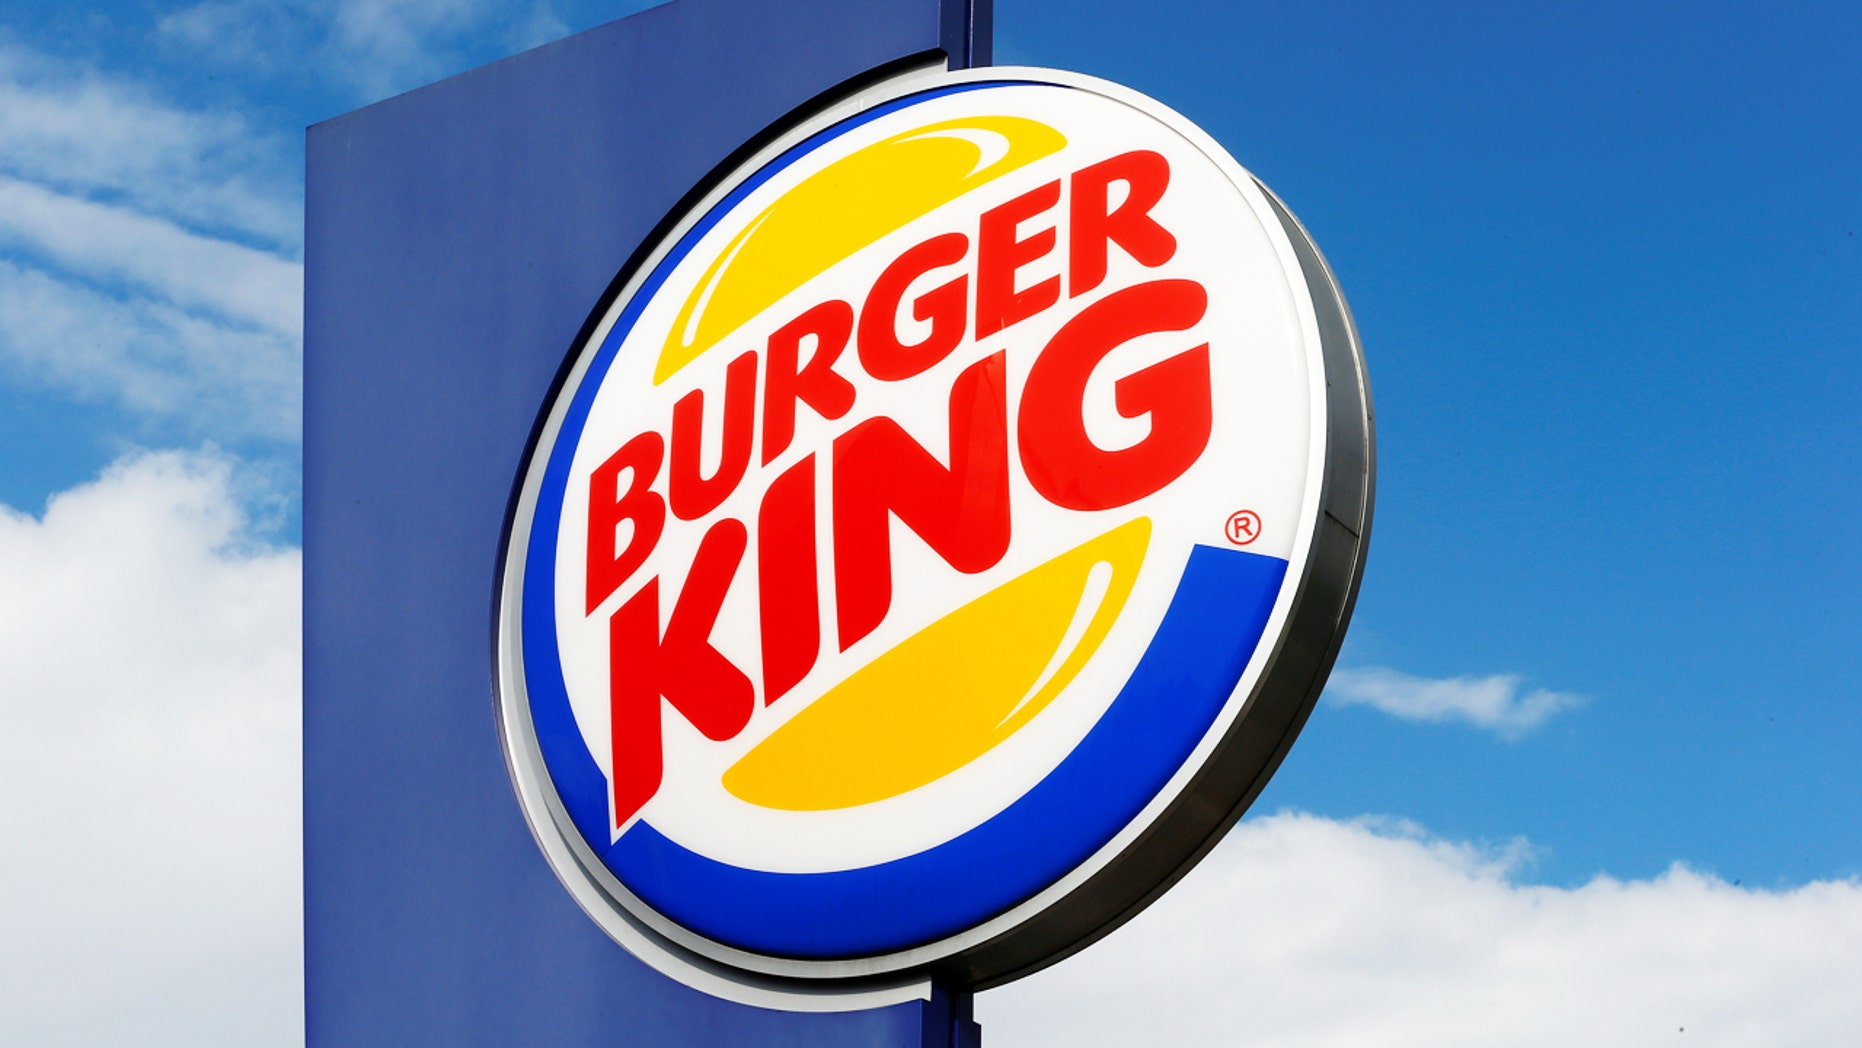 Wikipedia demands Burger King apologize after failed Google ...